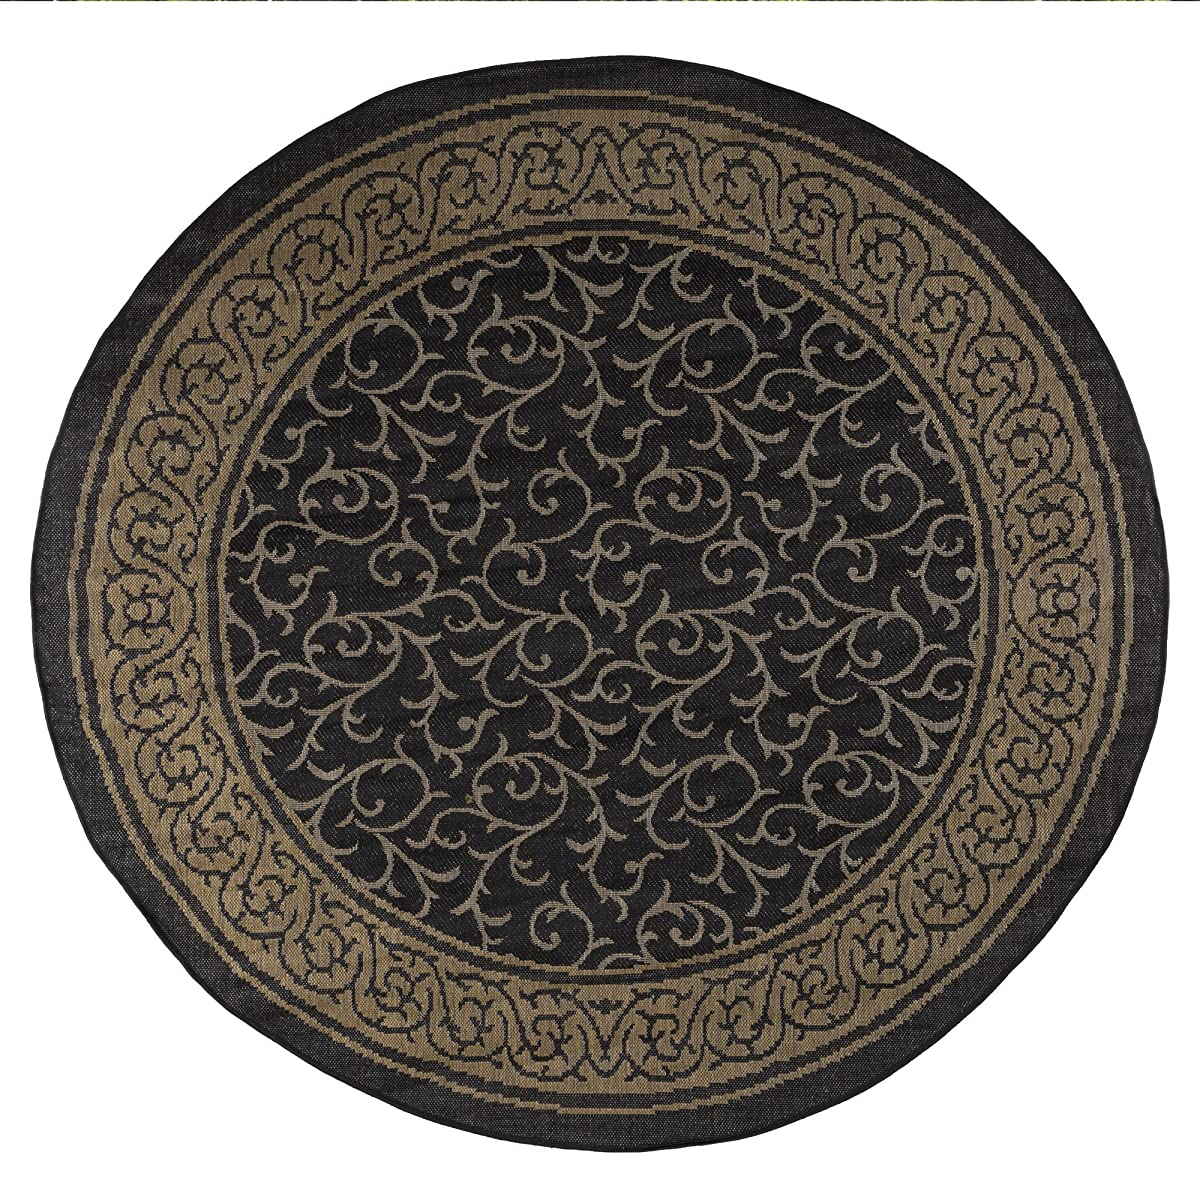 8 foot Round Area Rug, Indoor Outdoor Stain Resistant and Water Repellant Vine Ornate Rug by Lavish Home (Black and Tan) (Accent Rug for Home Decor)